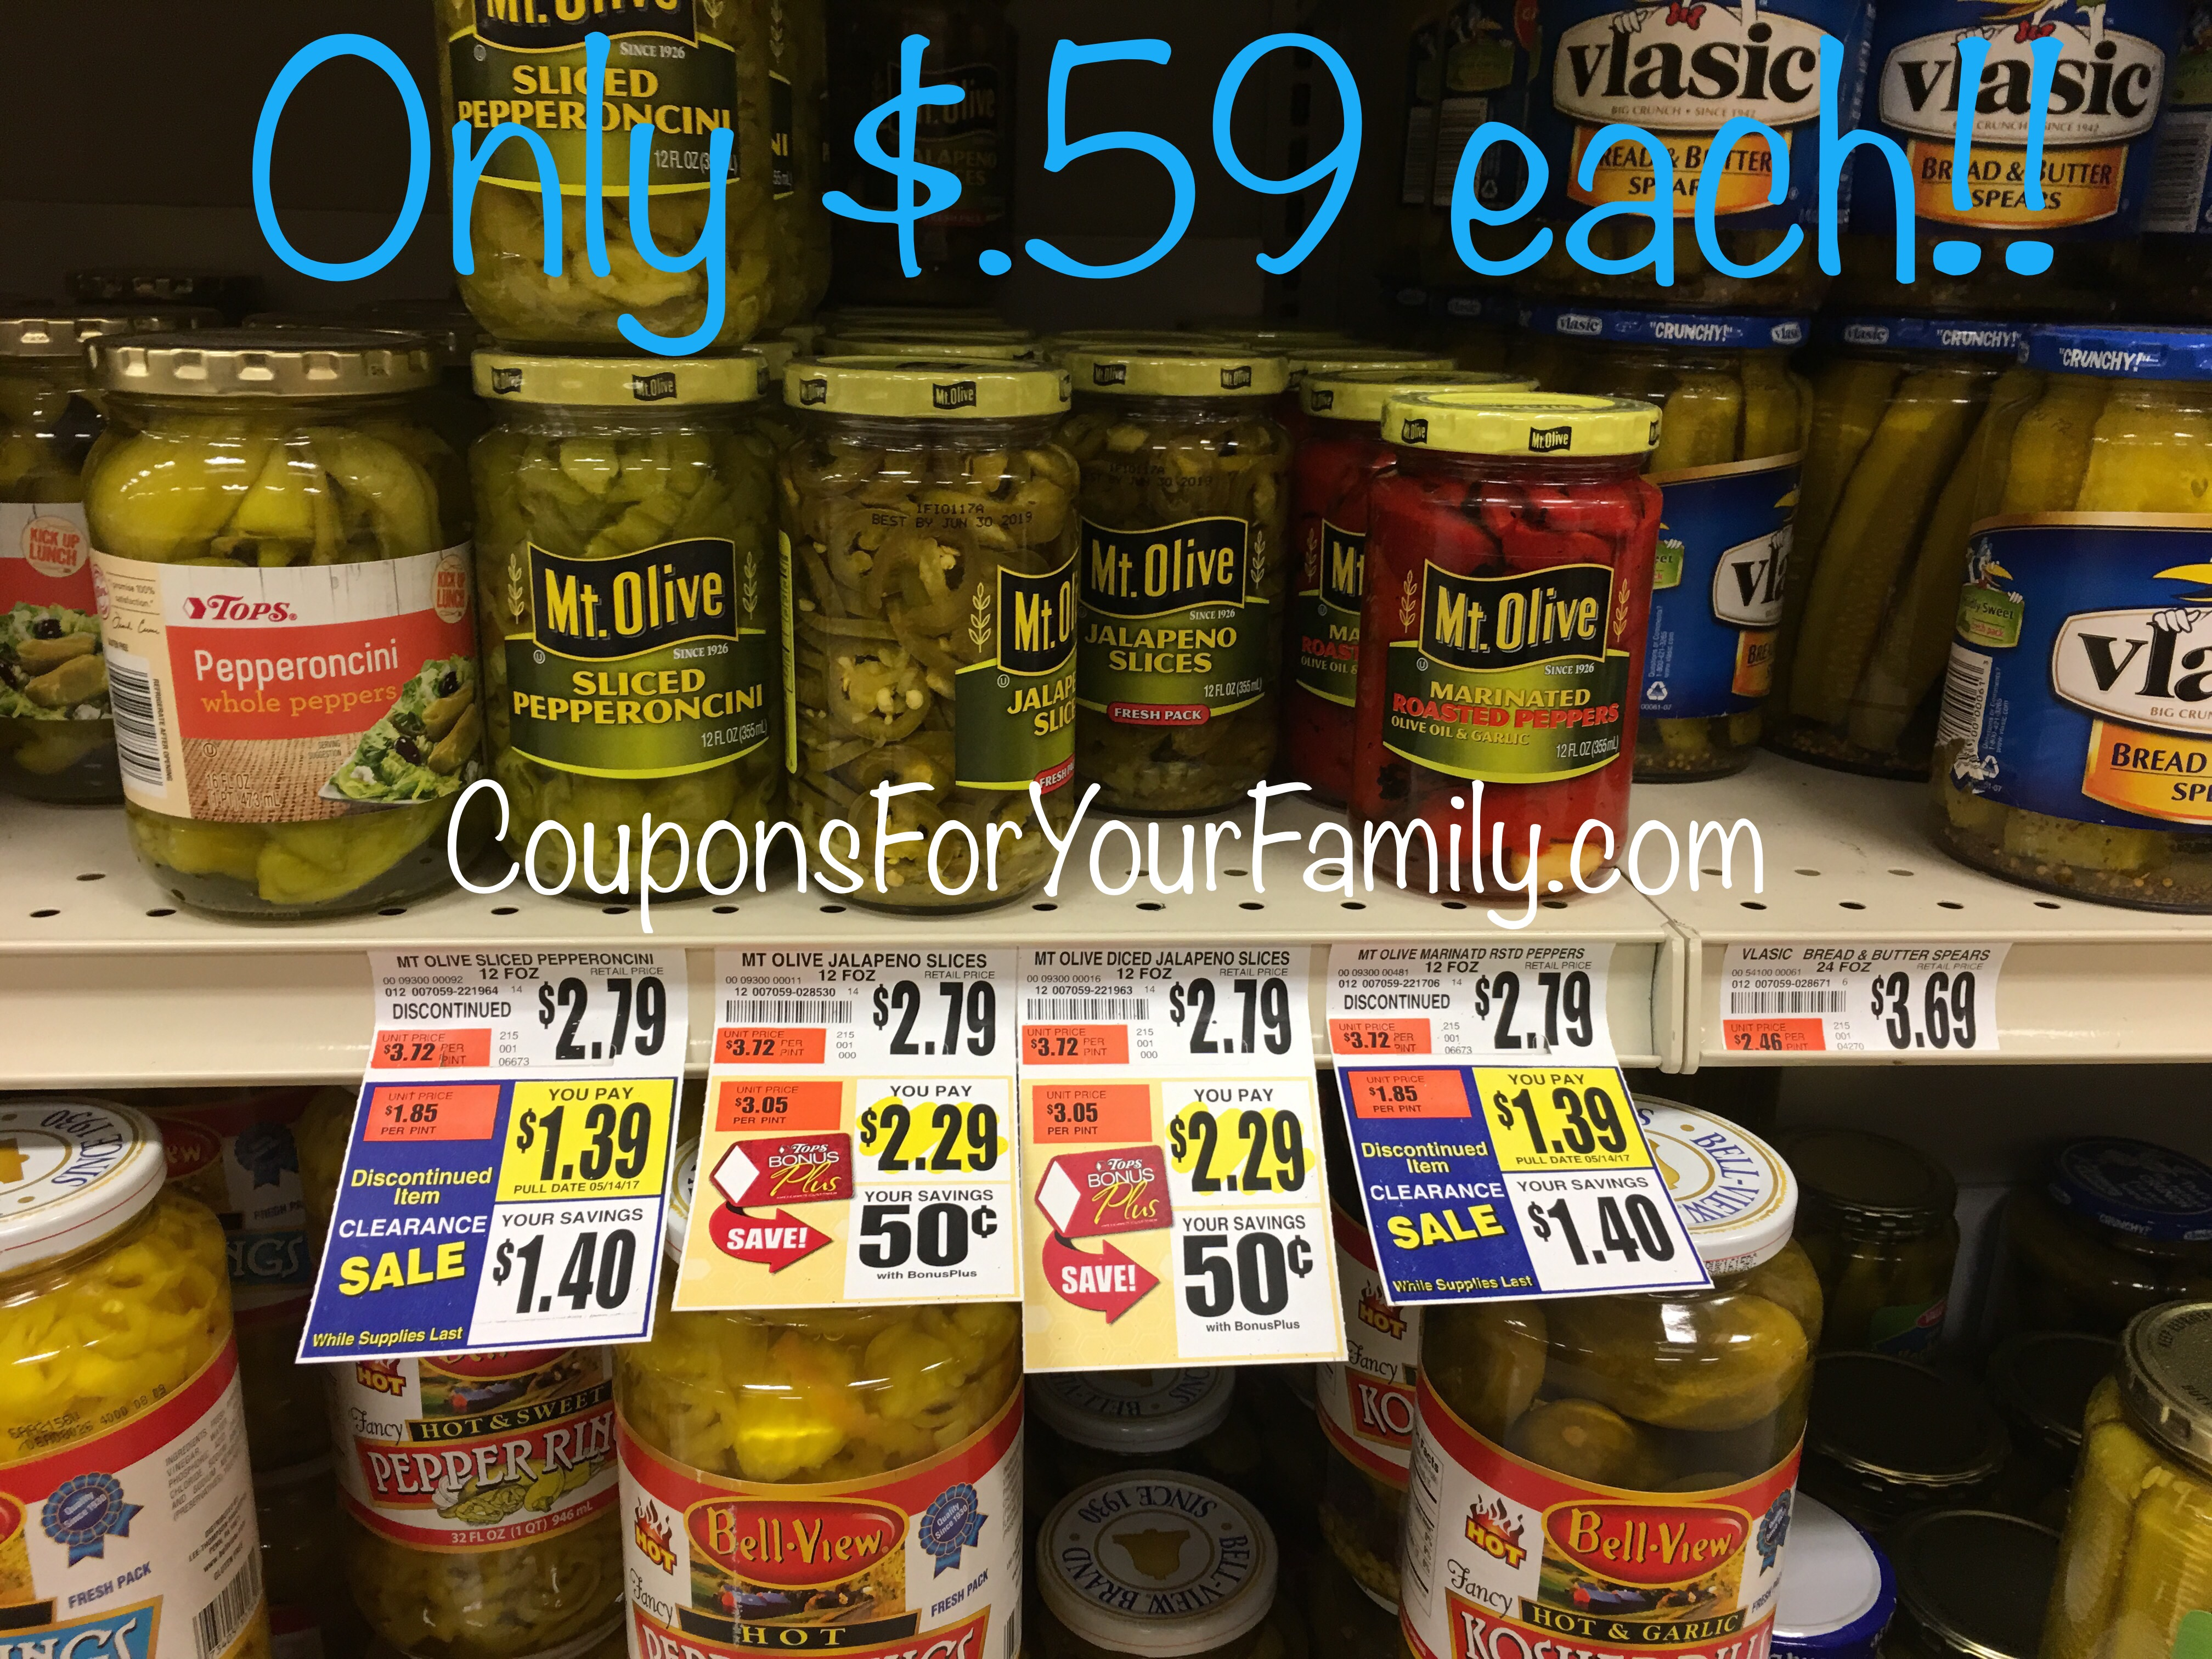 *HOT* Tops Mt. Olive Pepperoncini & Roasted Pepper Deal with coupon~~only $.59 each!